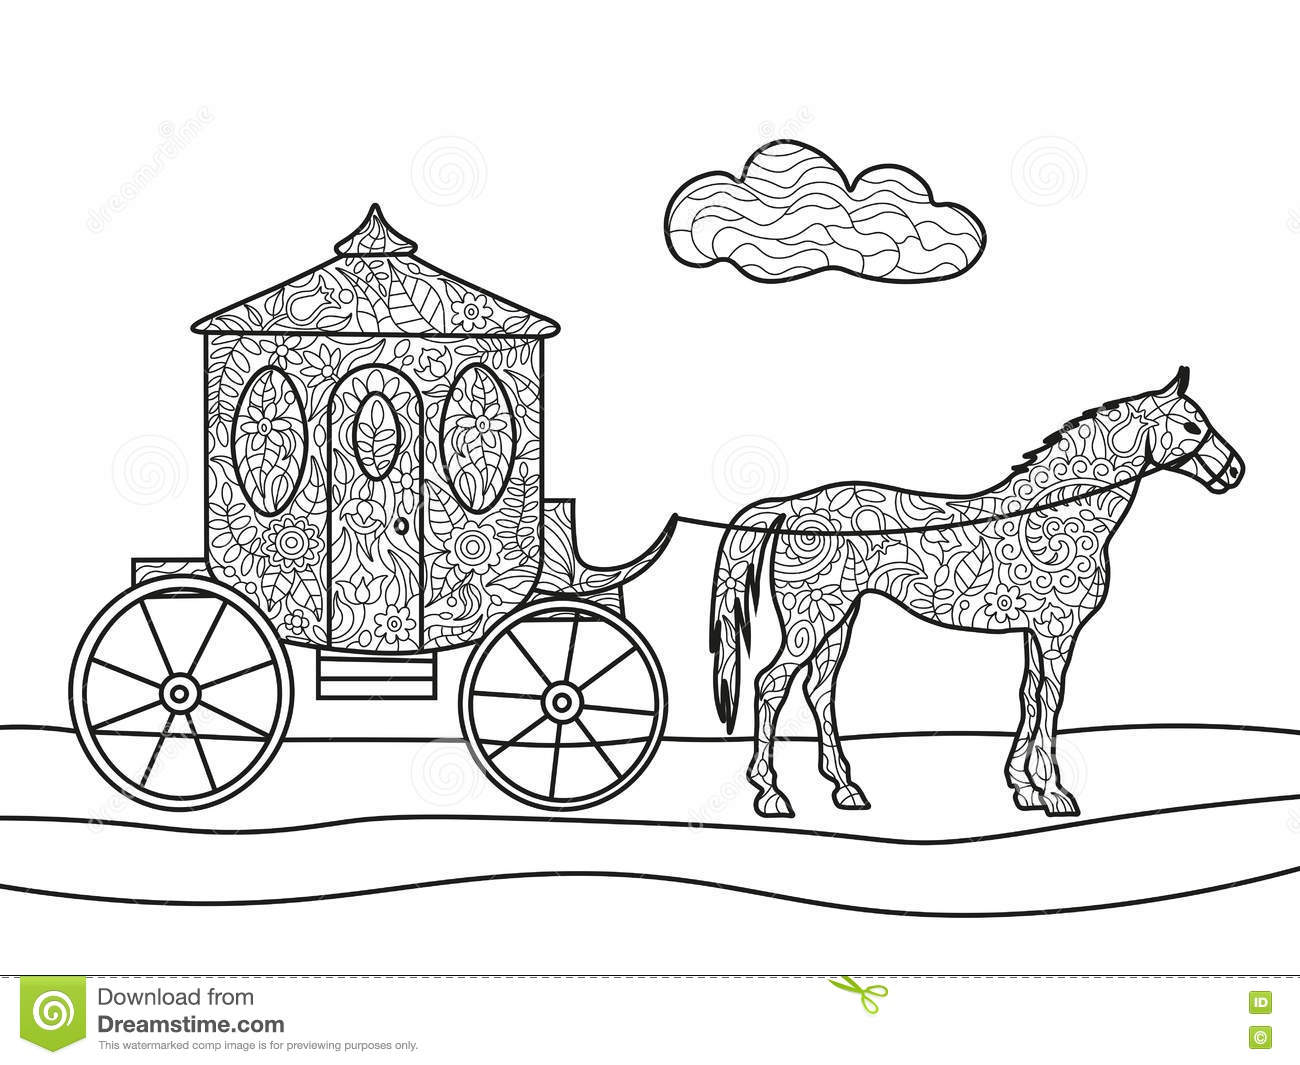 Carriage with a horse coloring book for adults vector illustration black and white lines lace pattern